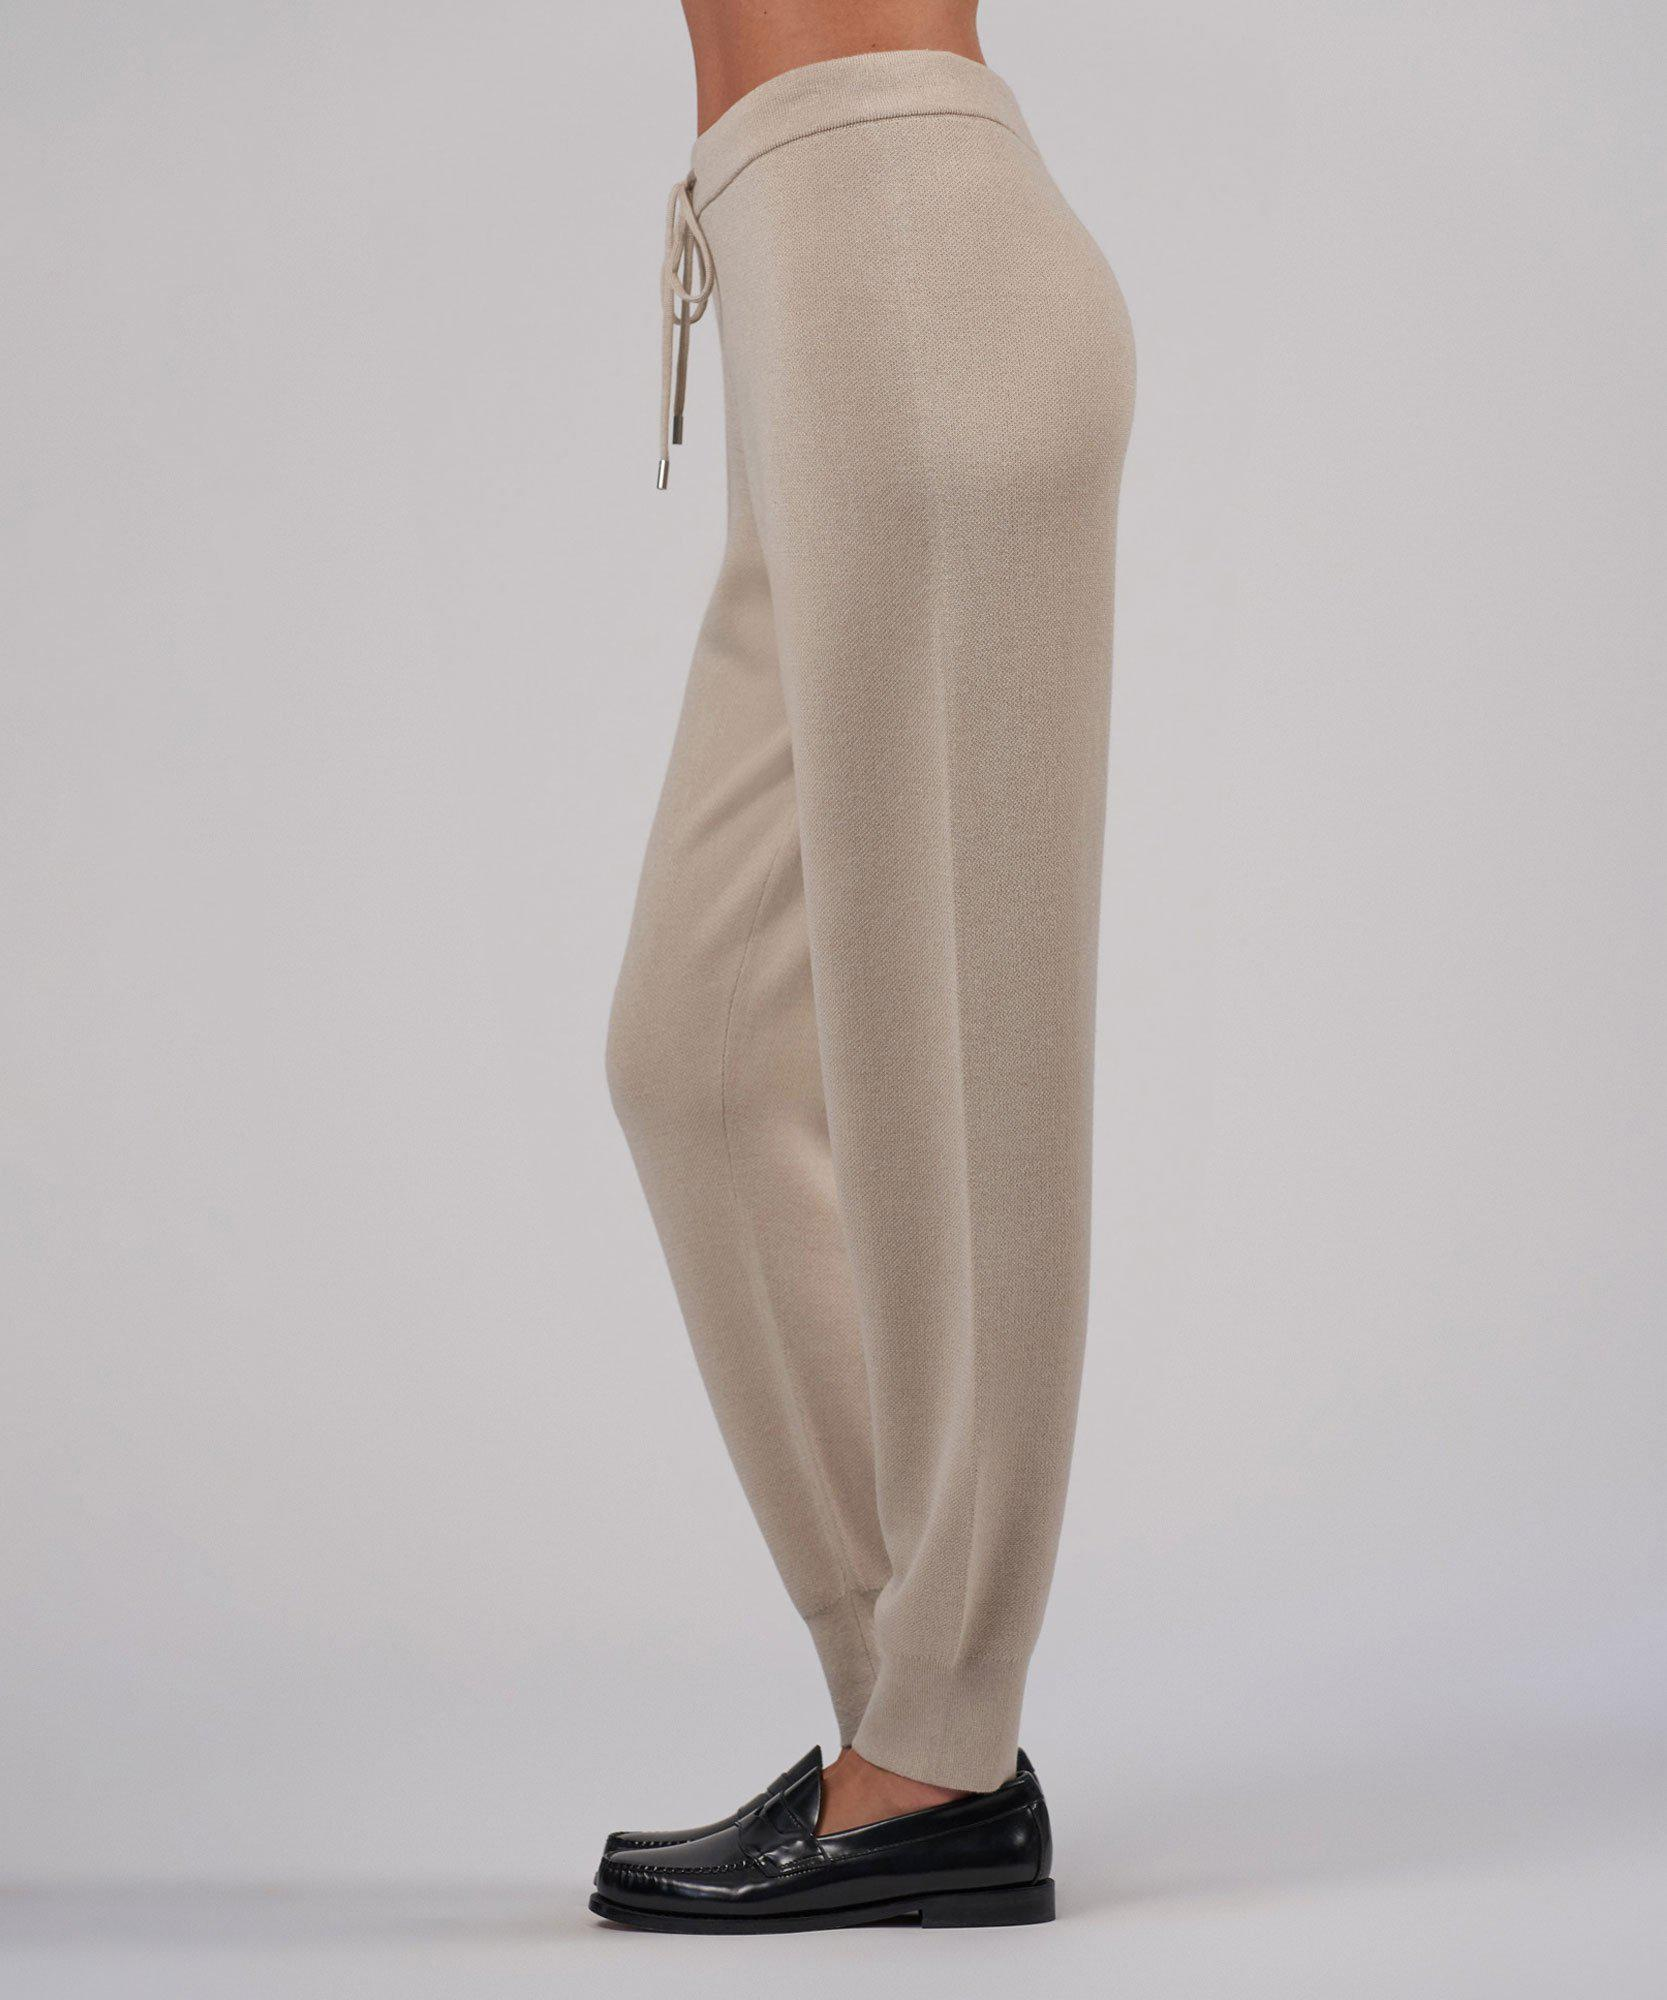 Cashmere Silk Pull-On Pant - Canvas 1